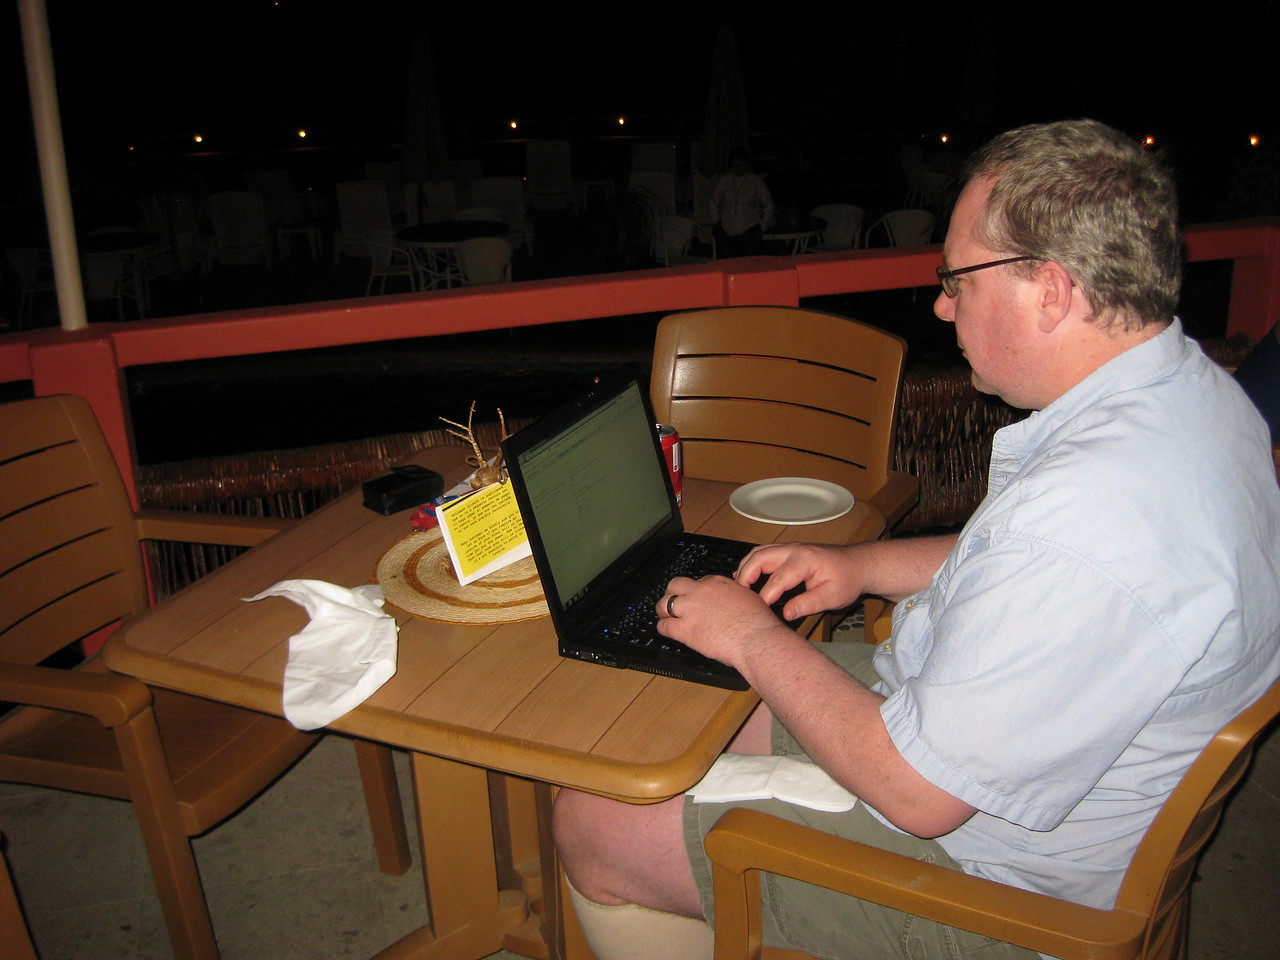 Checking emails back at our hotel.